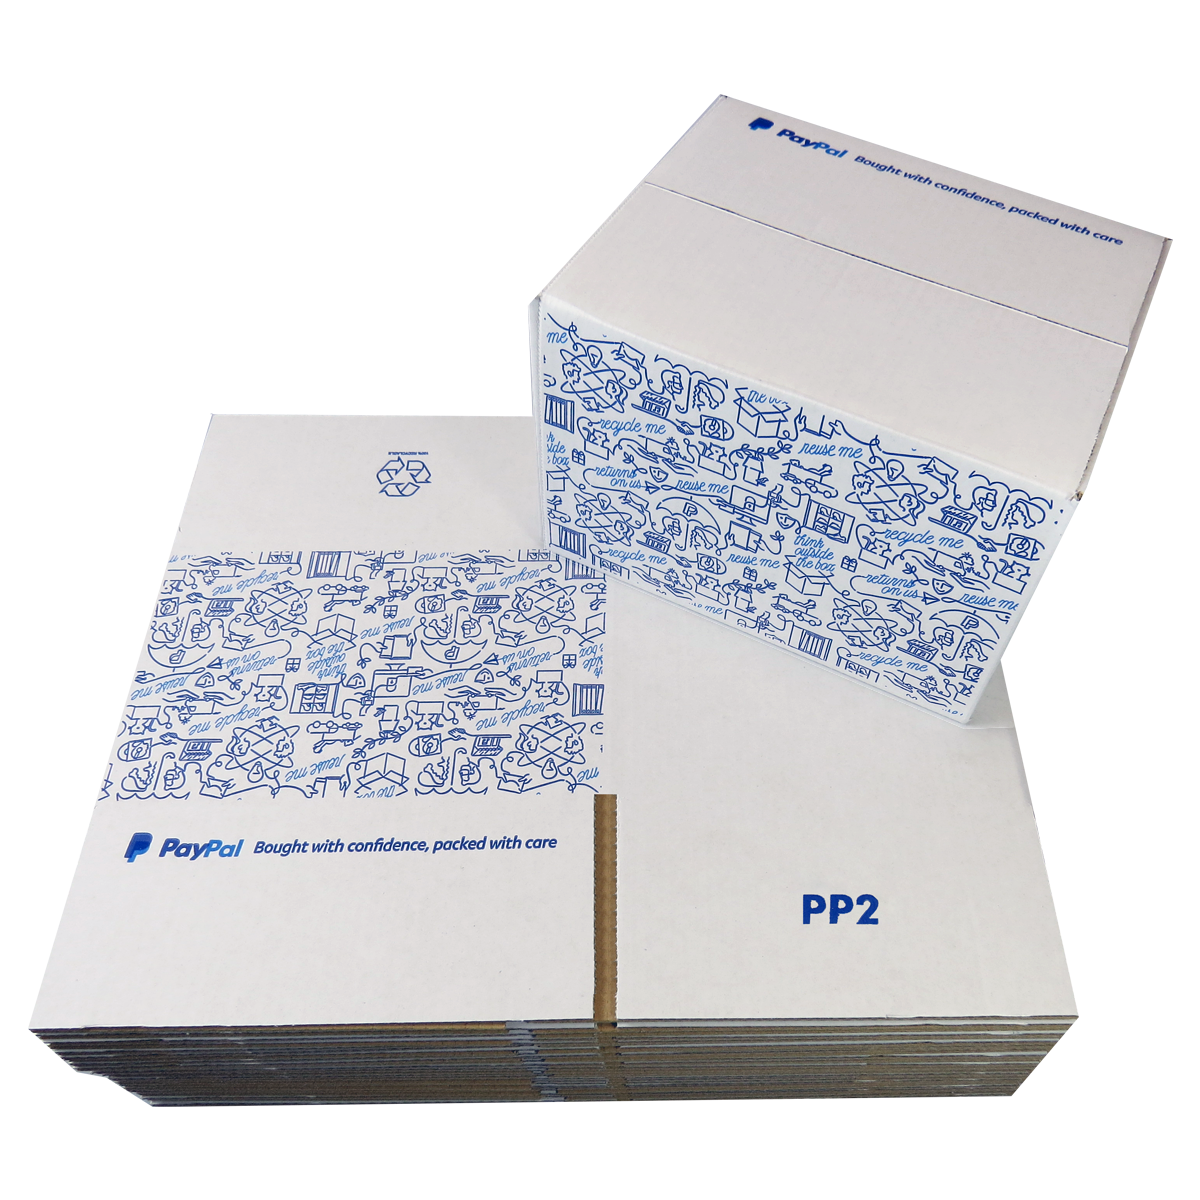 500 x PP2 PayPal Branded Quality White Single Wall Cardboard Postal Mailing Boxes 215x180x135mm